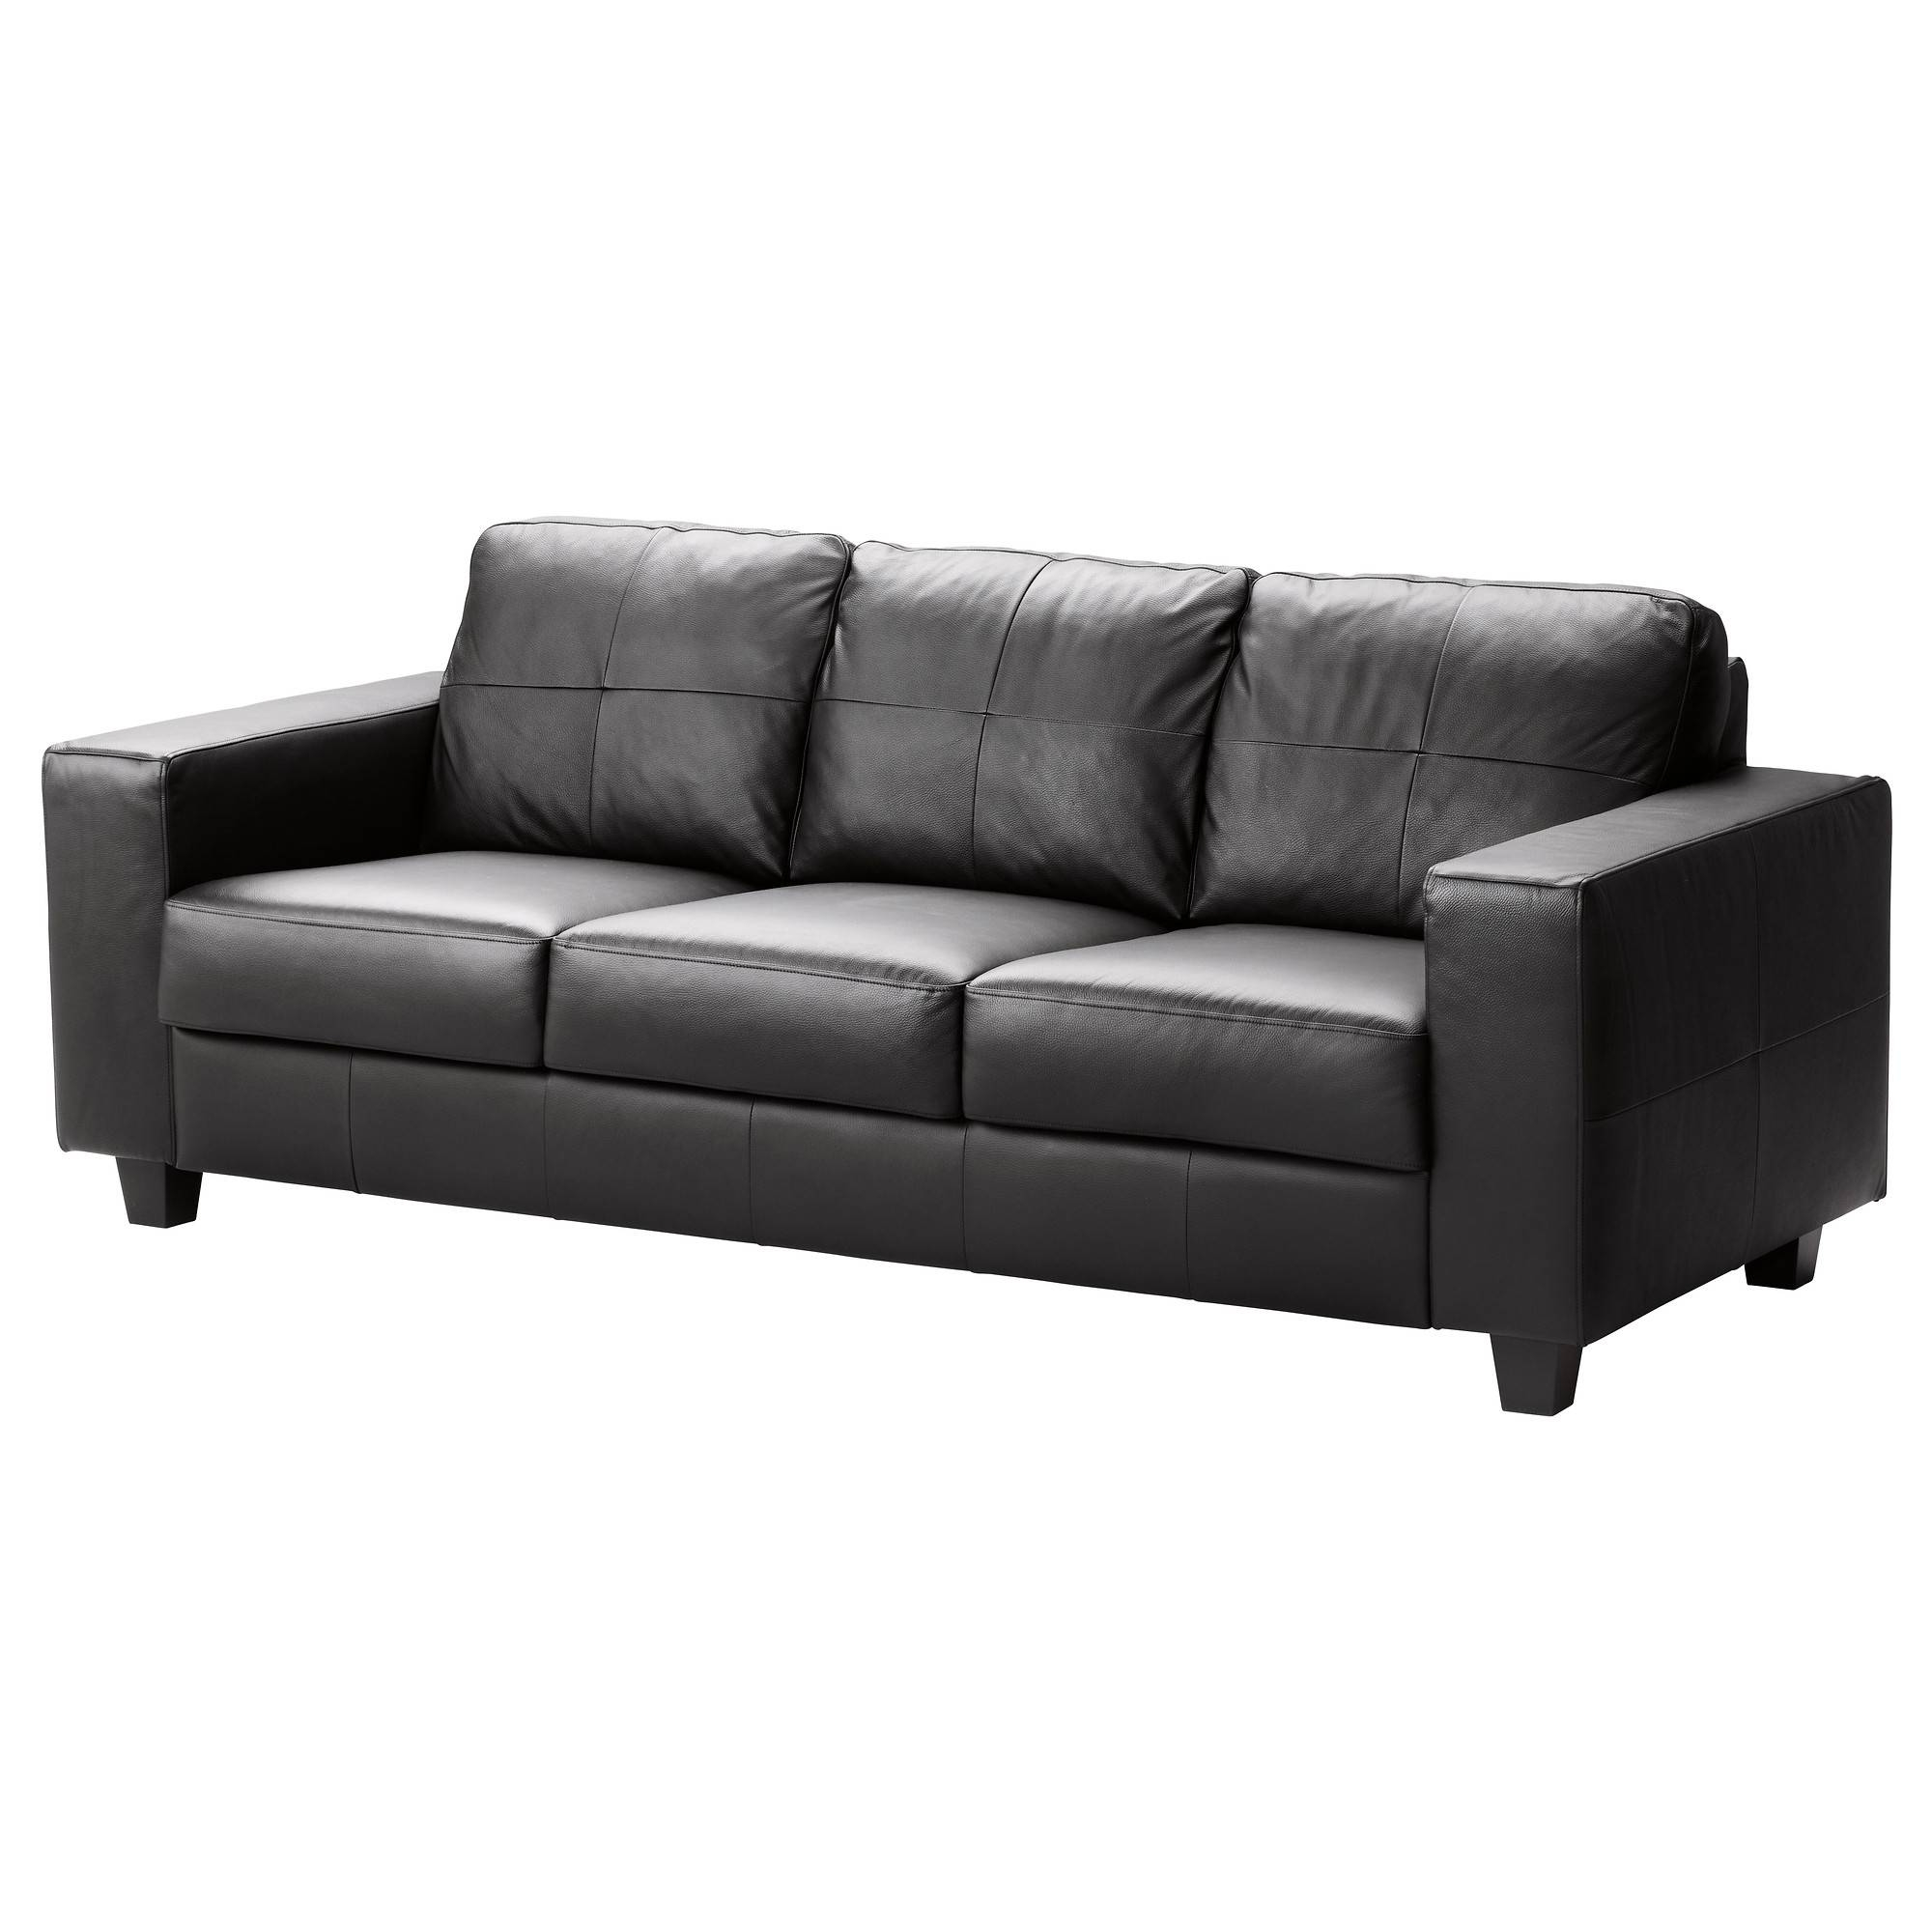 Leather/faux Leather Sofas - Ikea for Leather Sofas (Image 23 of 30)